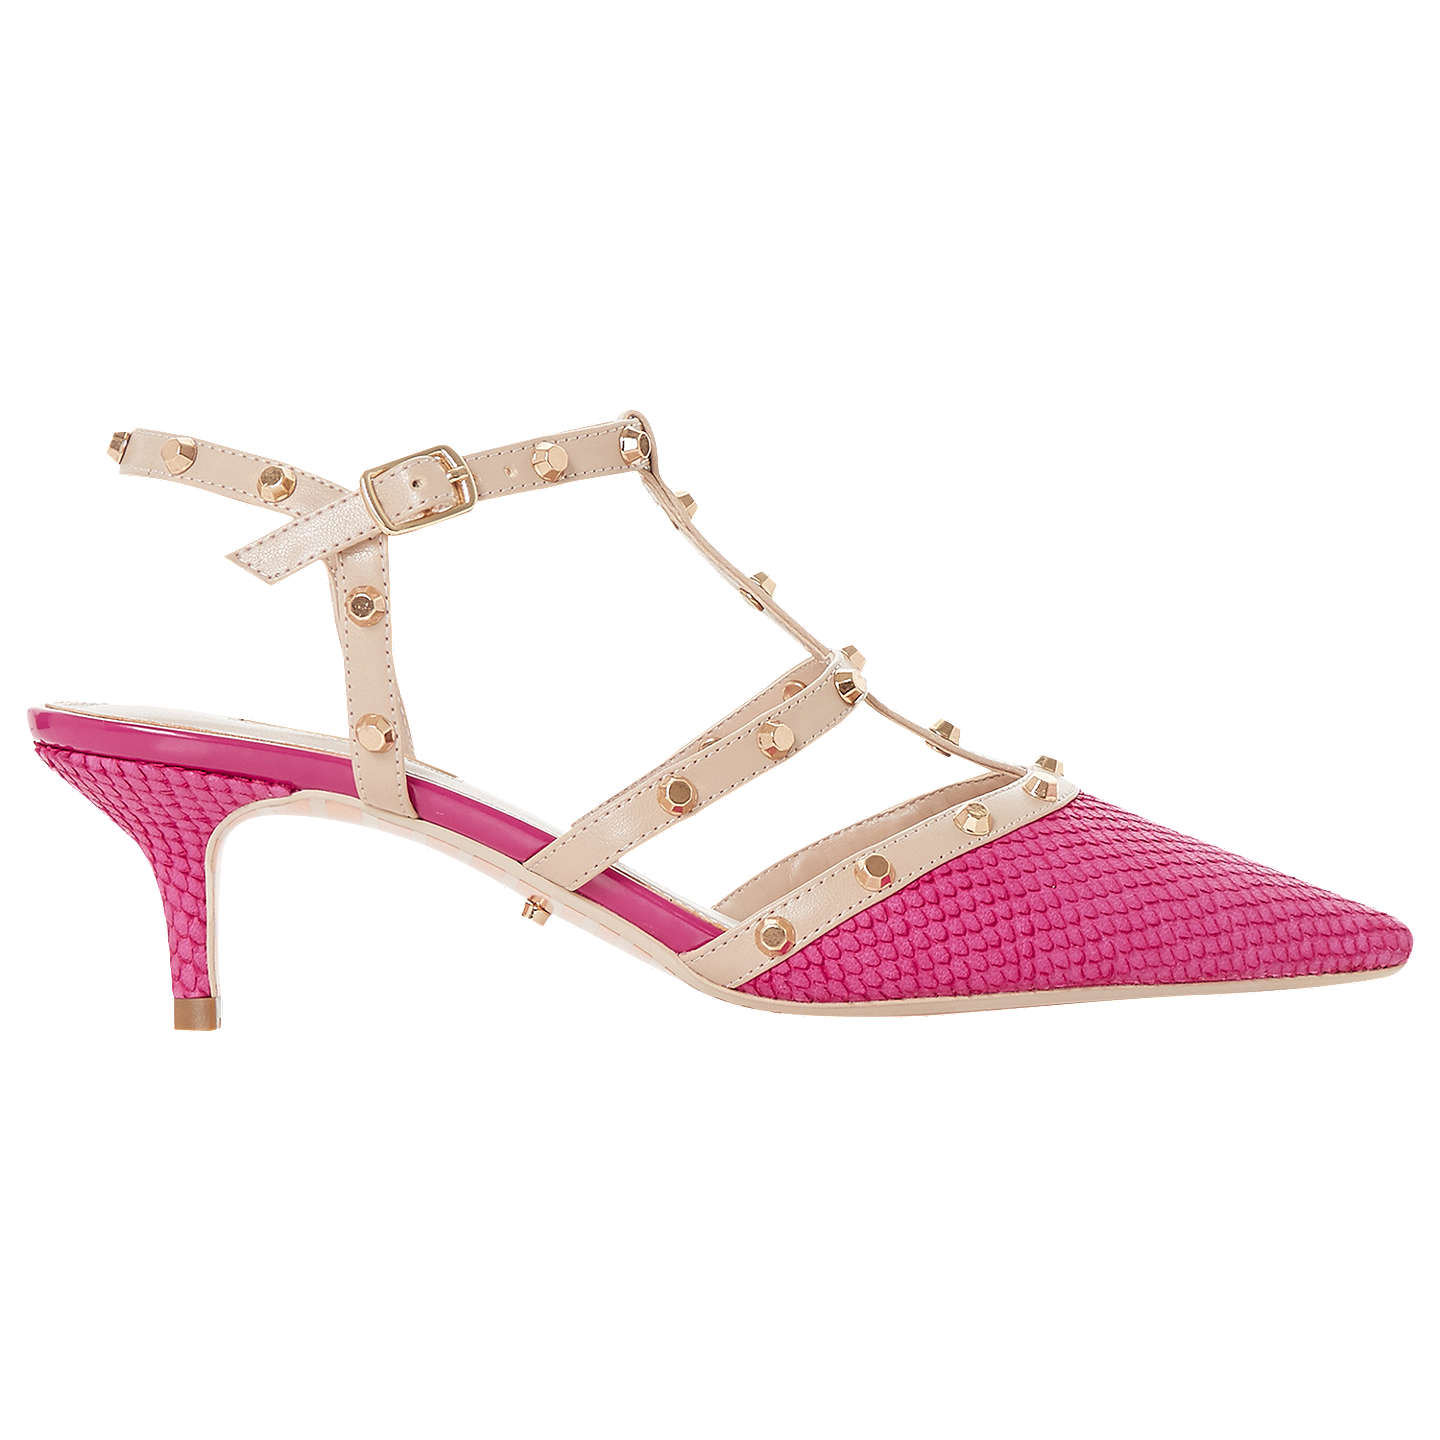 BuyDune Casterly T-Bar Studded Court Shoes, Pink Leather, 4 Online at johnlewis.com